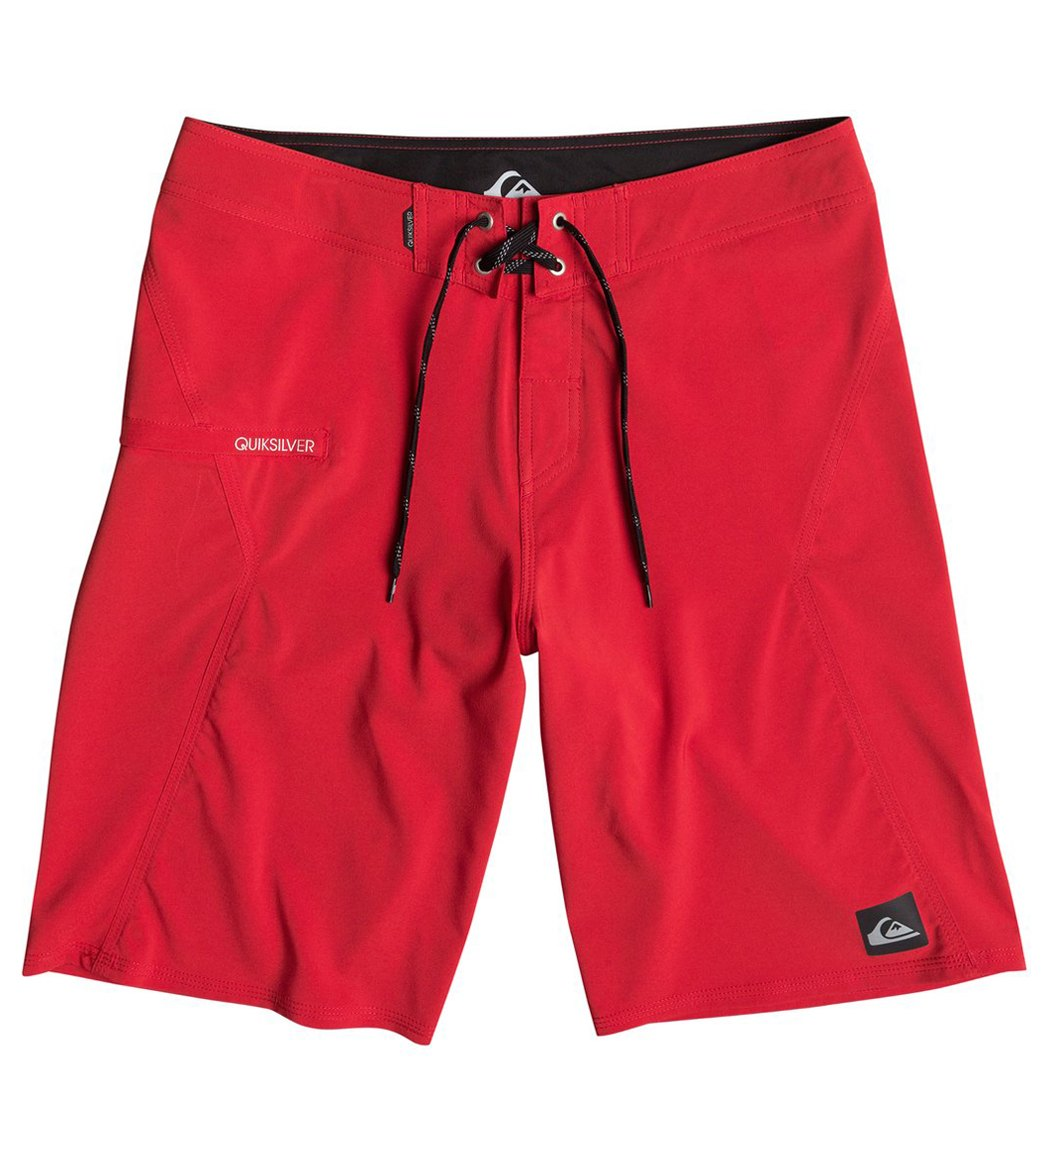 c23d32a695 Quiksilver Men's Everyday Kaimana 19 Board Shorts